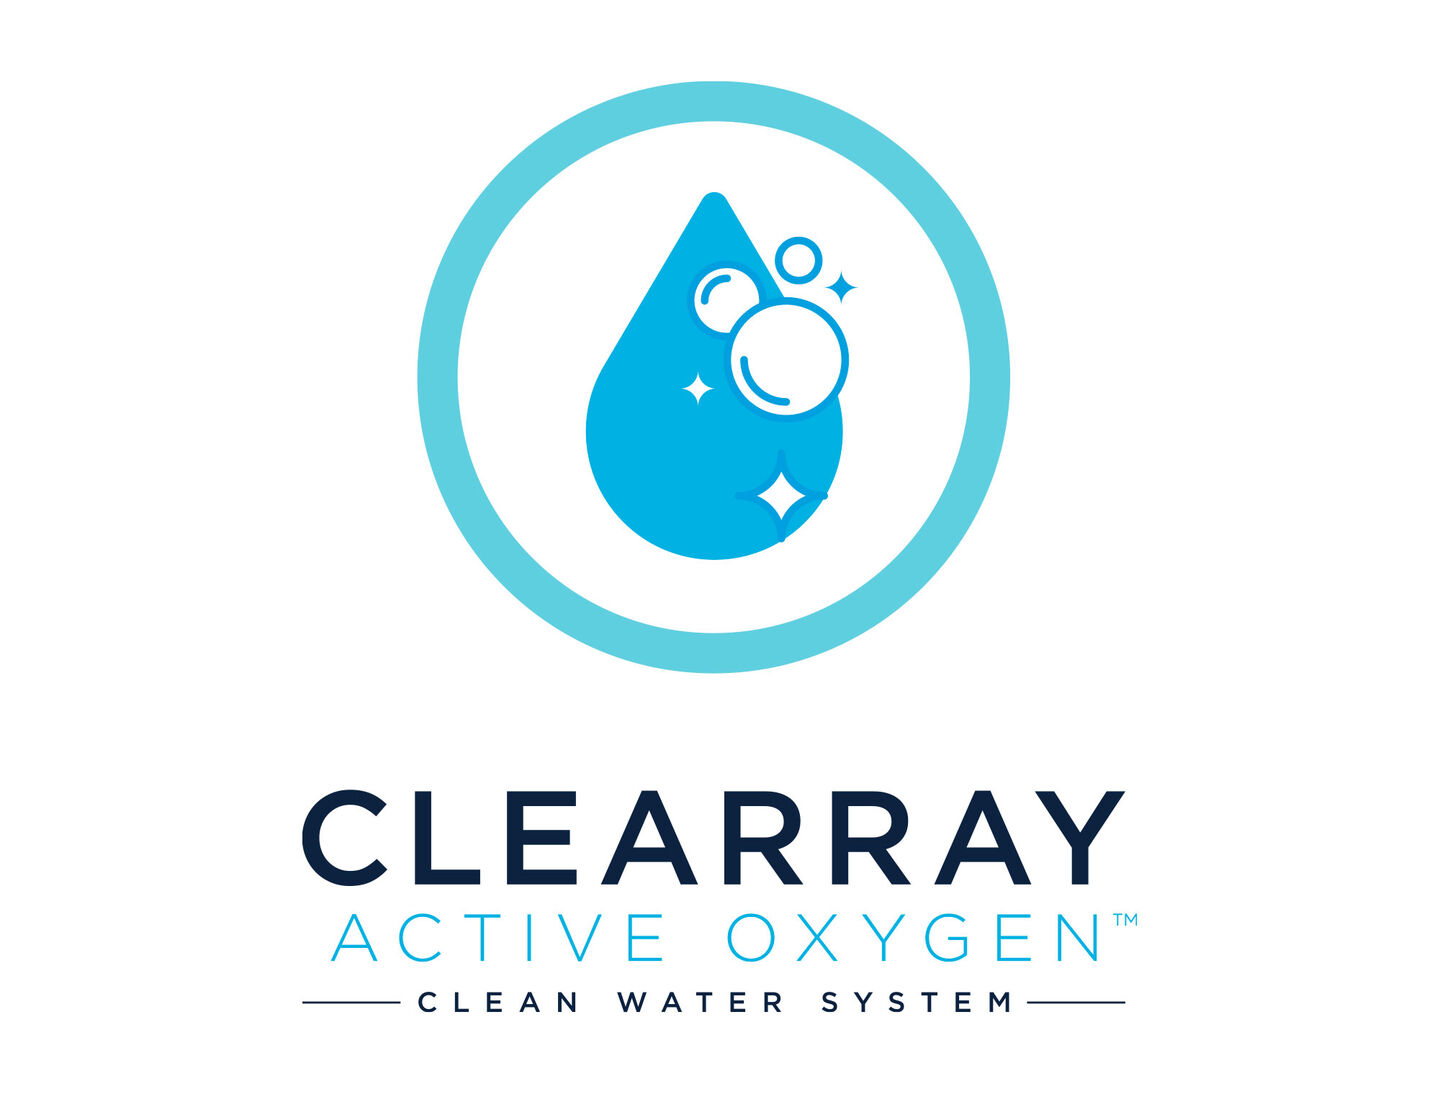 Clearray